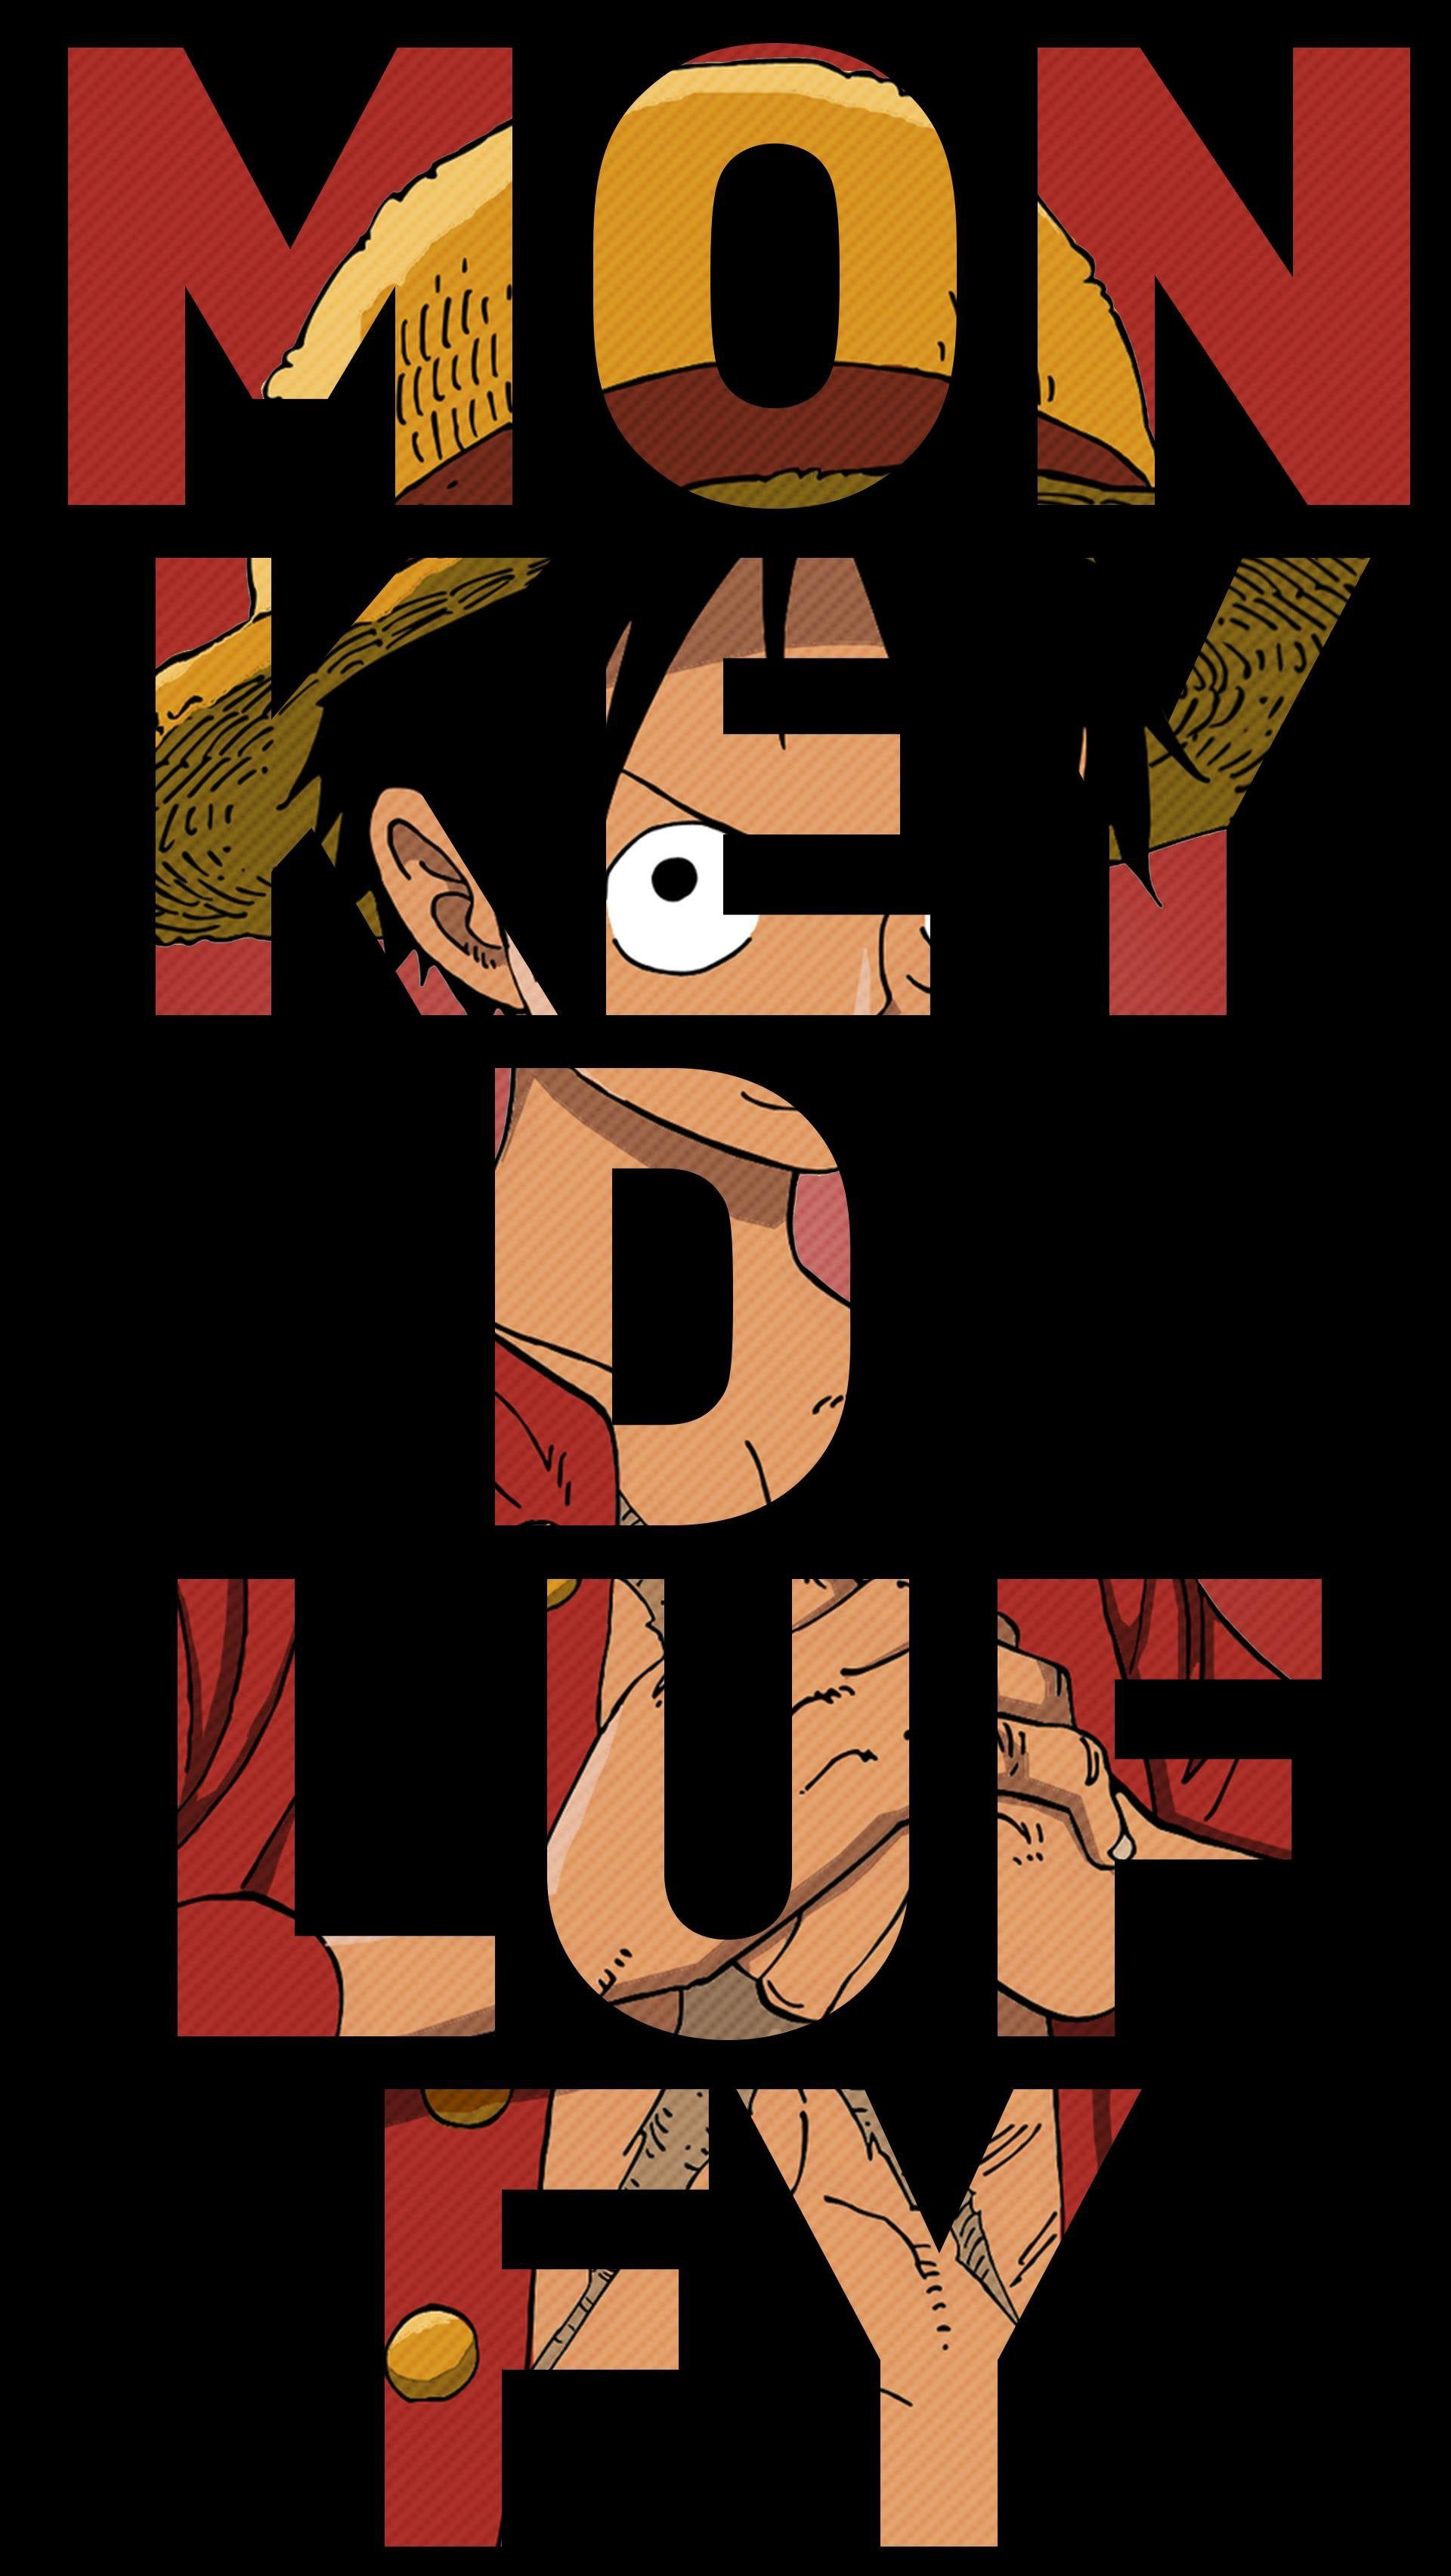 Luffy One Piece Phone Wallpapers Top Free Luffy One Piece Phone Backgrounds Wallpaperaccess